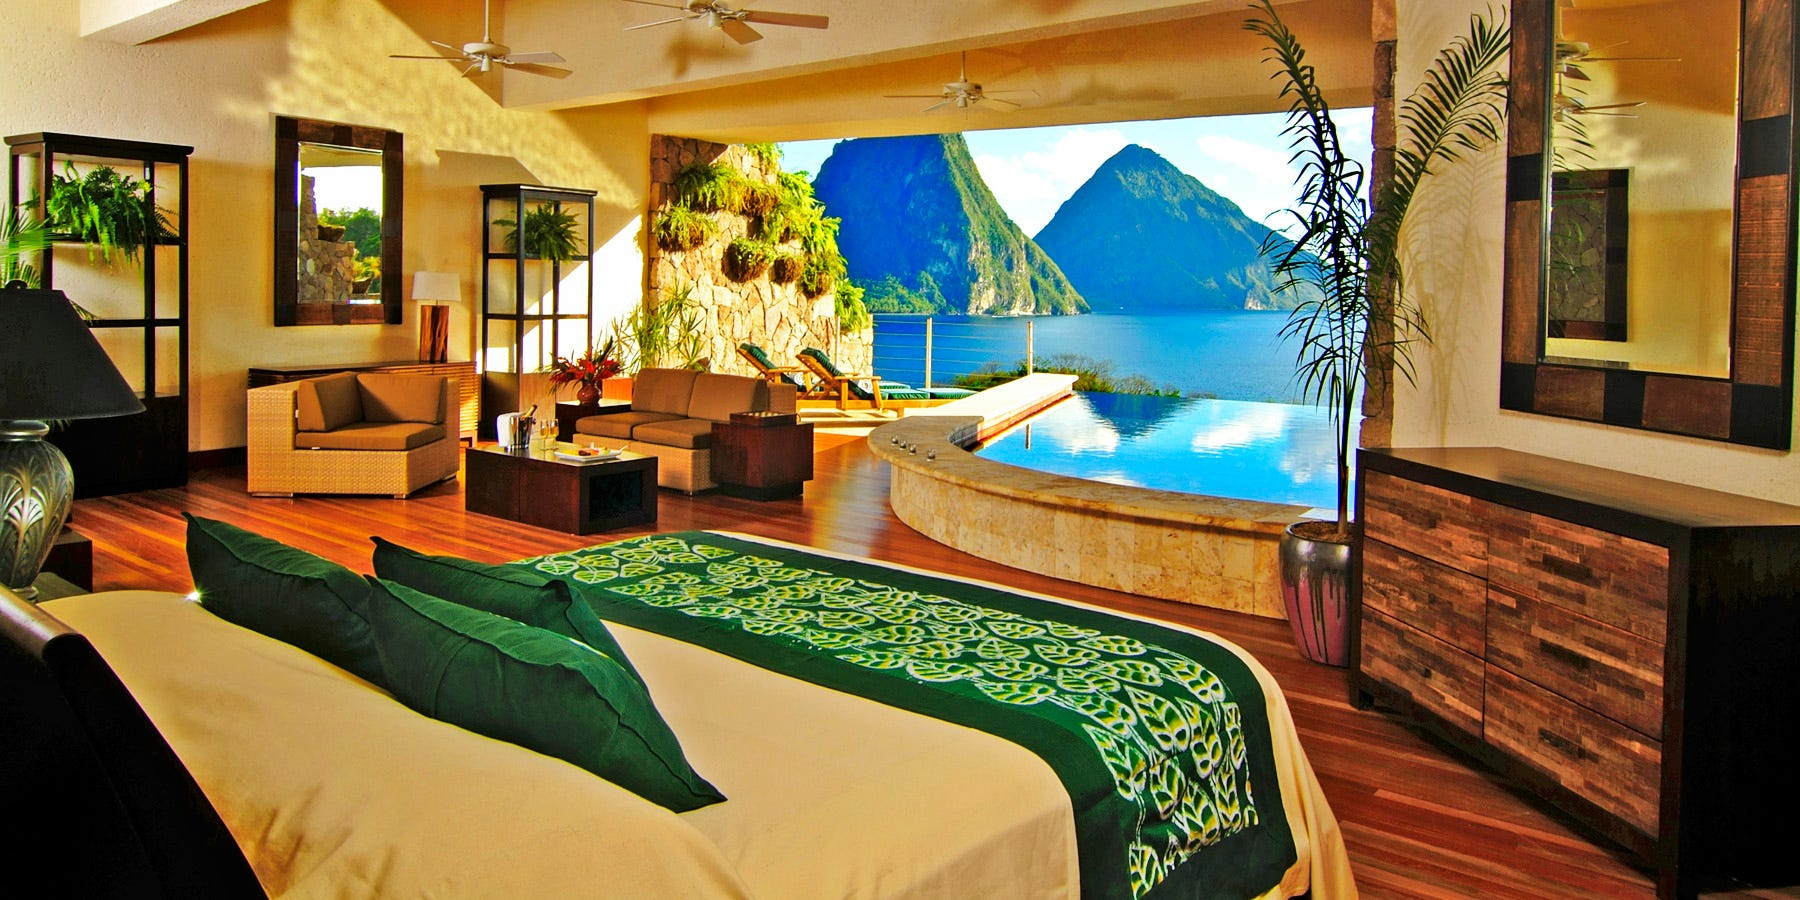 635907129643017758-St.-Lucia-big-beautiful-bed-at-Jade & Swoon-worthy: The sexiest beds in the Caribbean